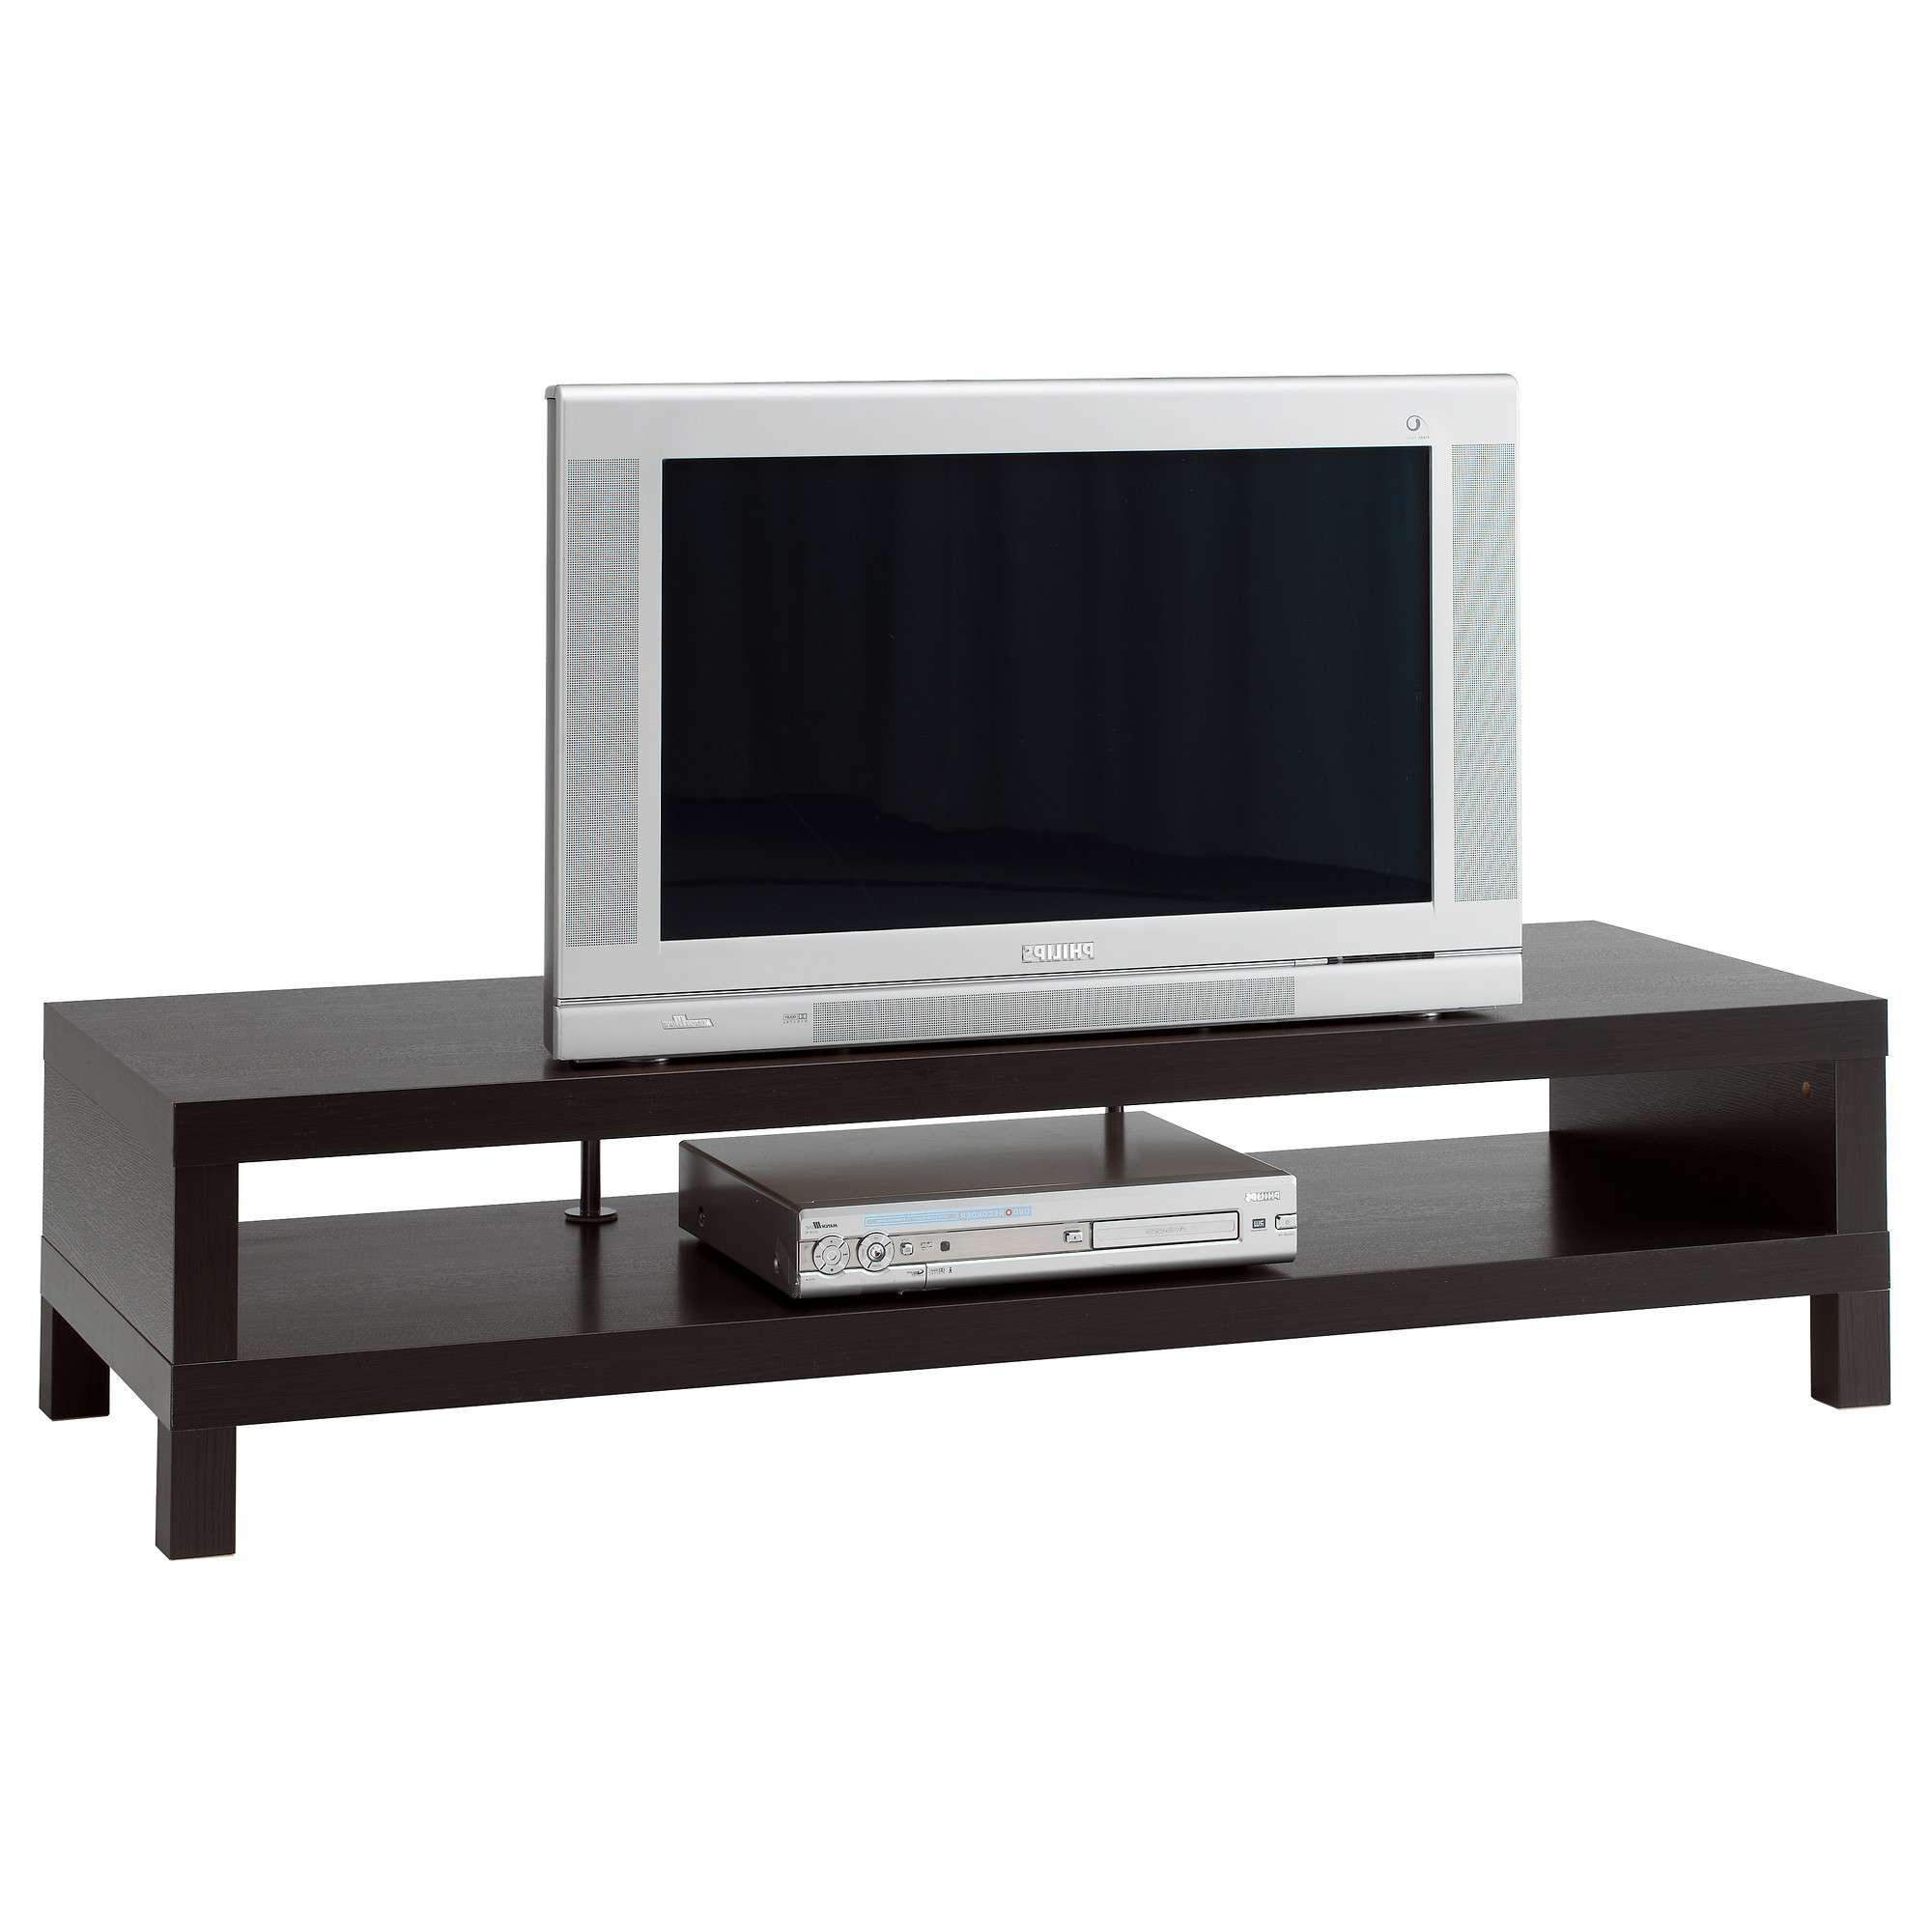 Large Tv Stands & Entertainment Centers – Ikea Pertaining To Wide Tv Cabinets (View 7 of 20)